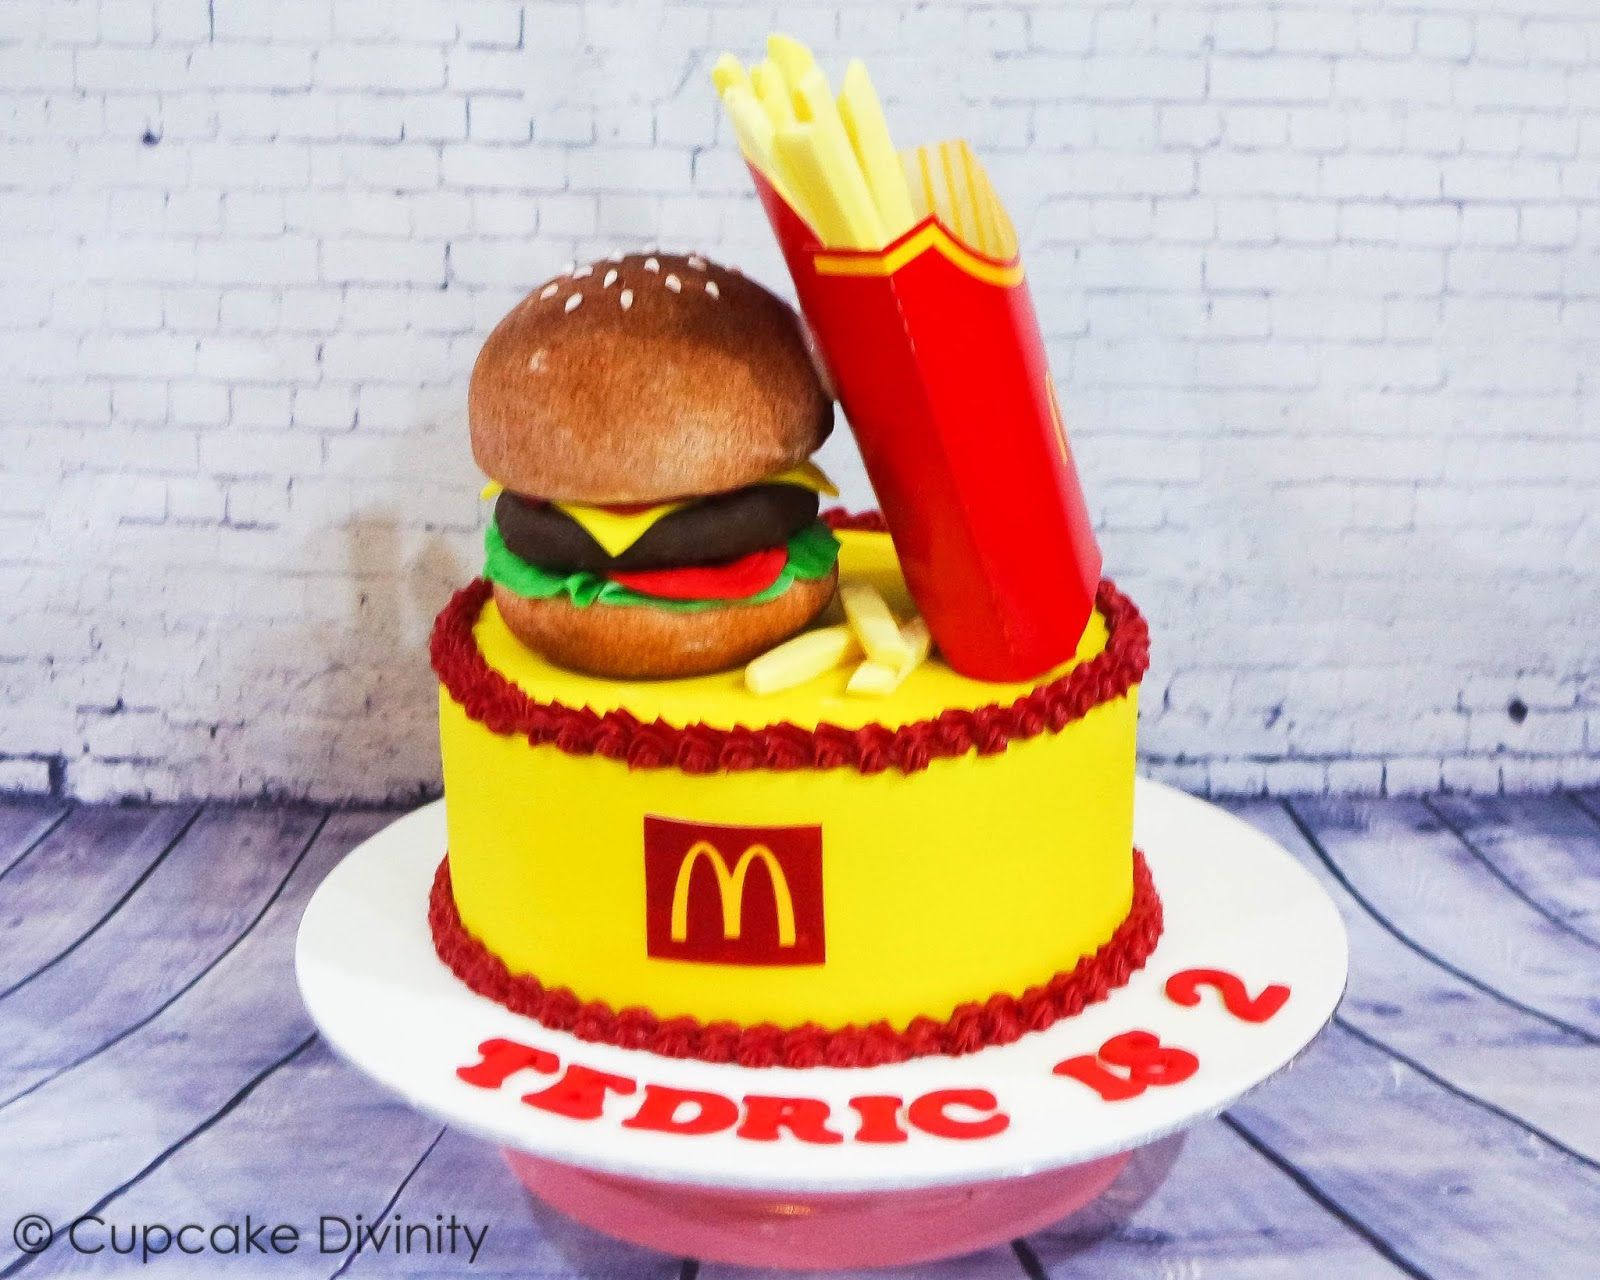 Cupcake Divinity McDonalds Hamburger Fries Set Cake